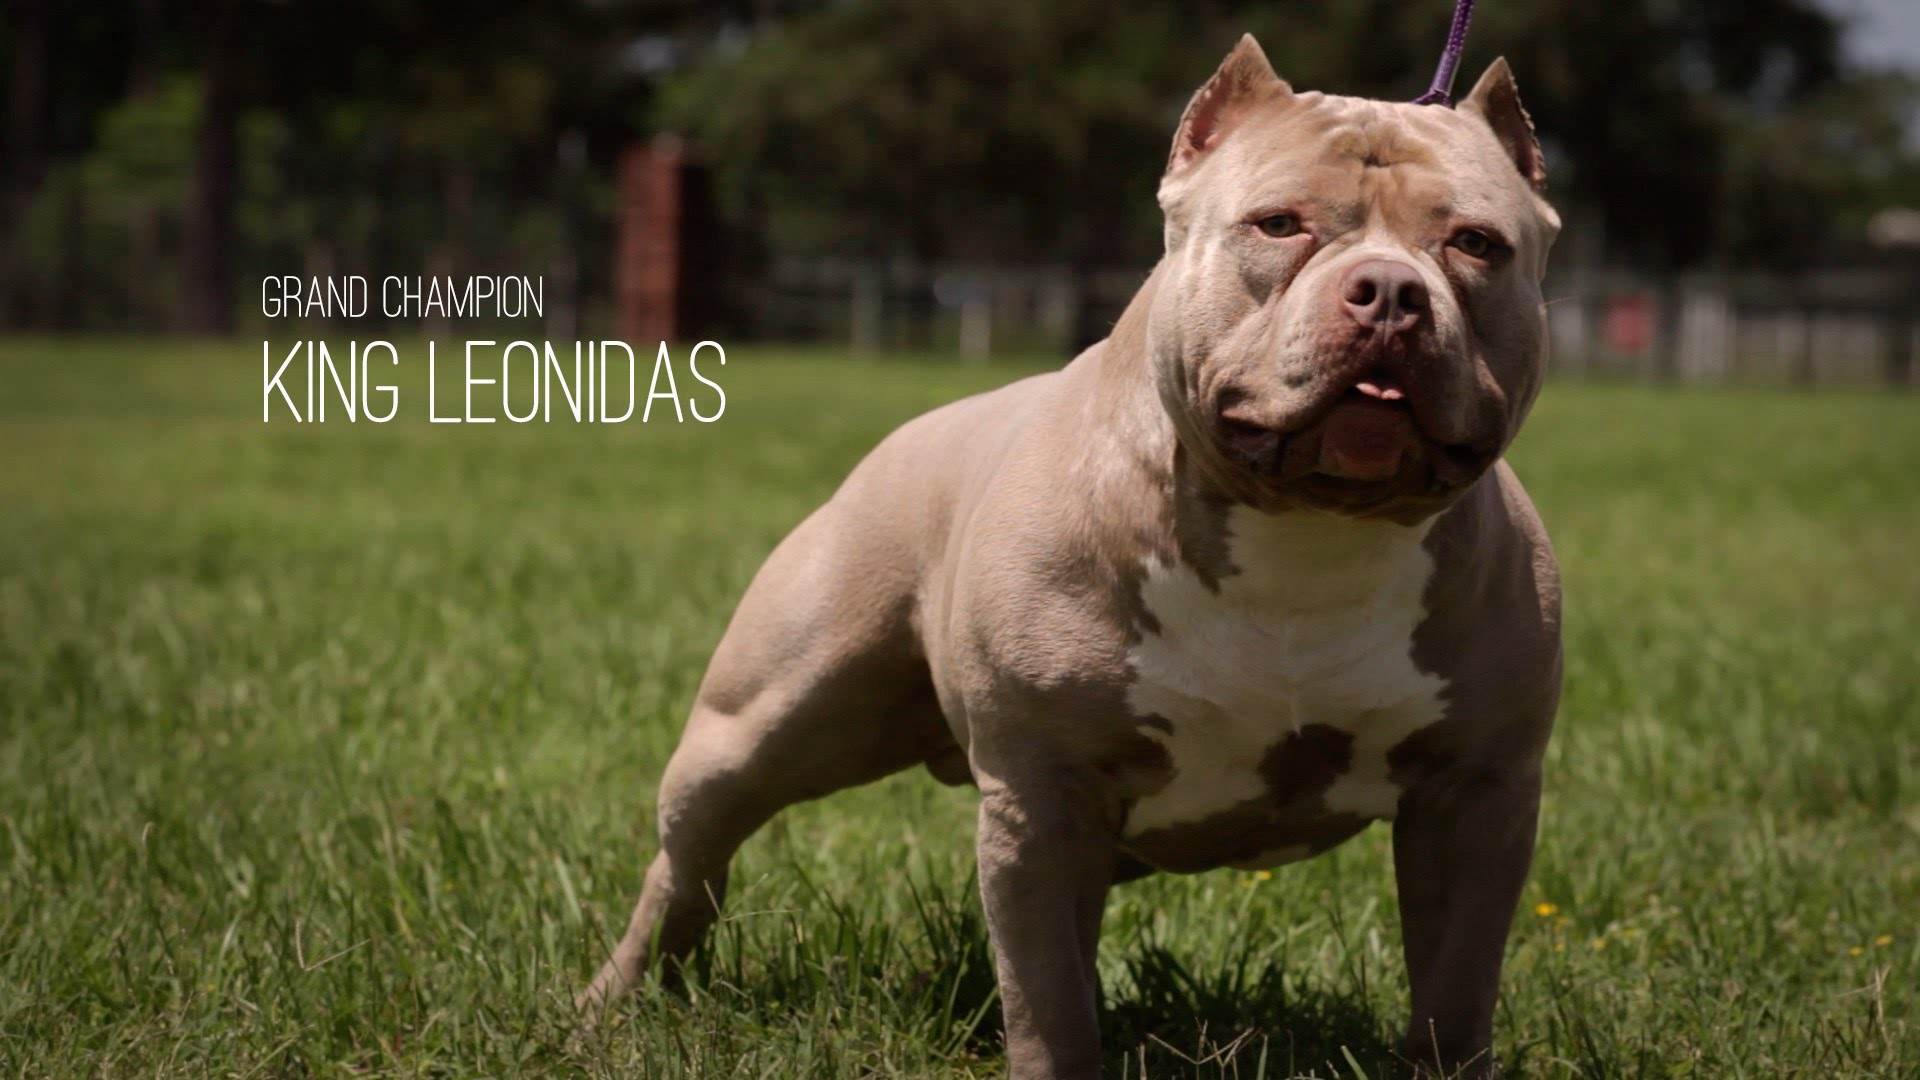 American Bully Grand Champion King Leonidas